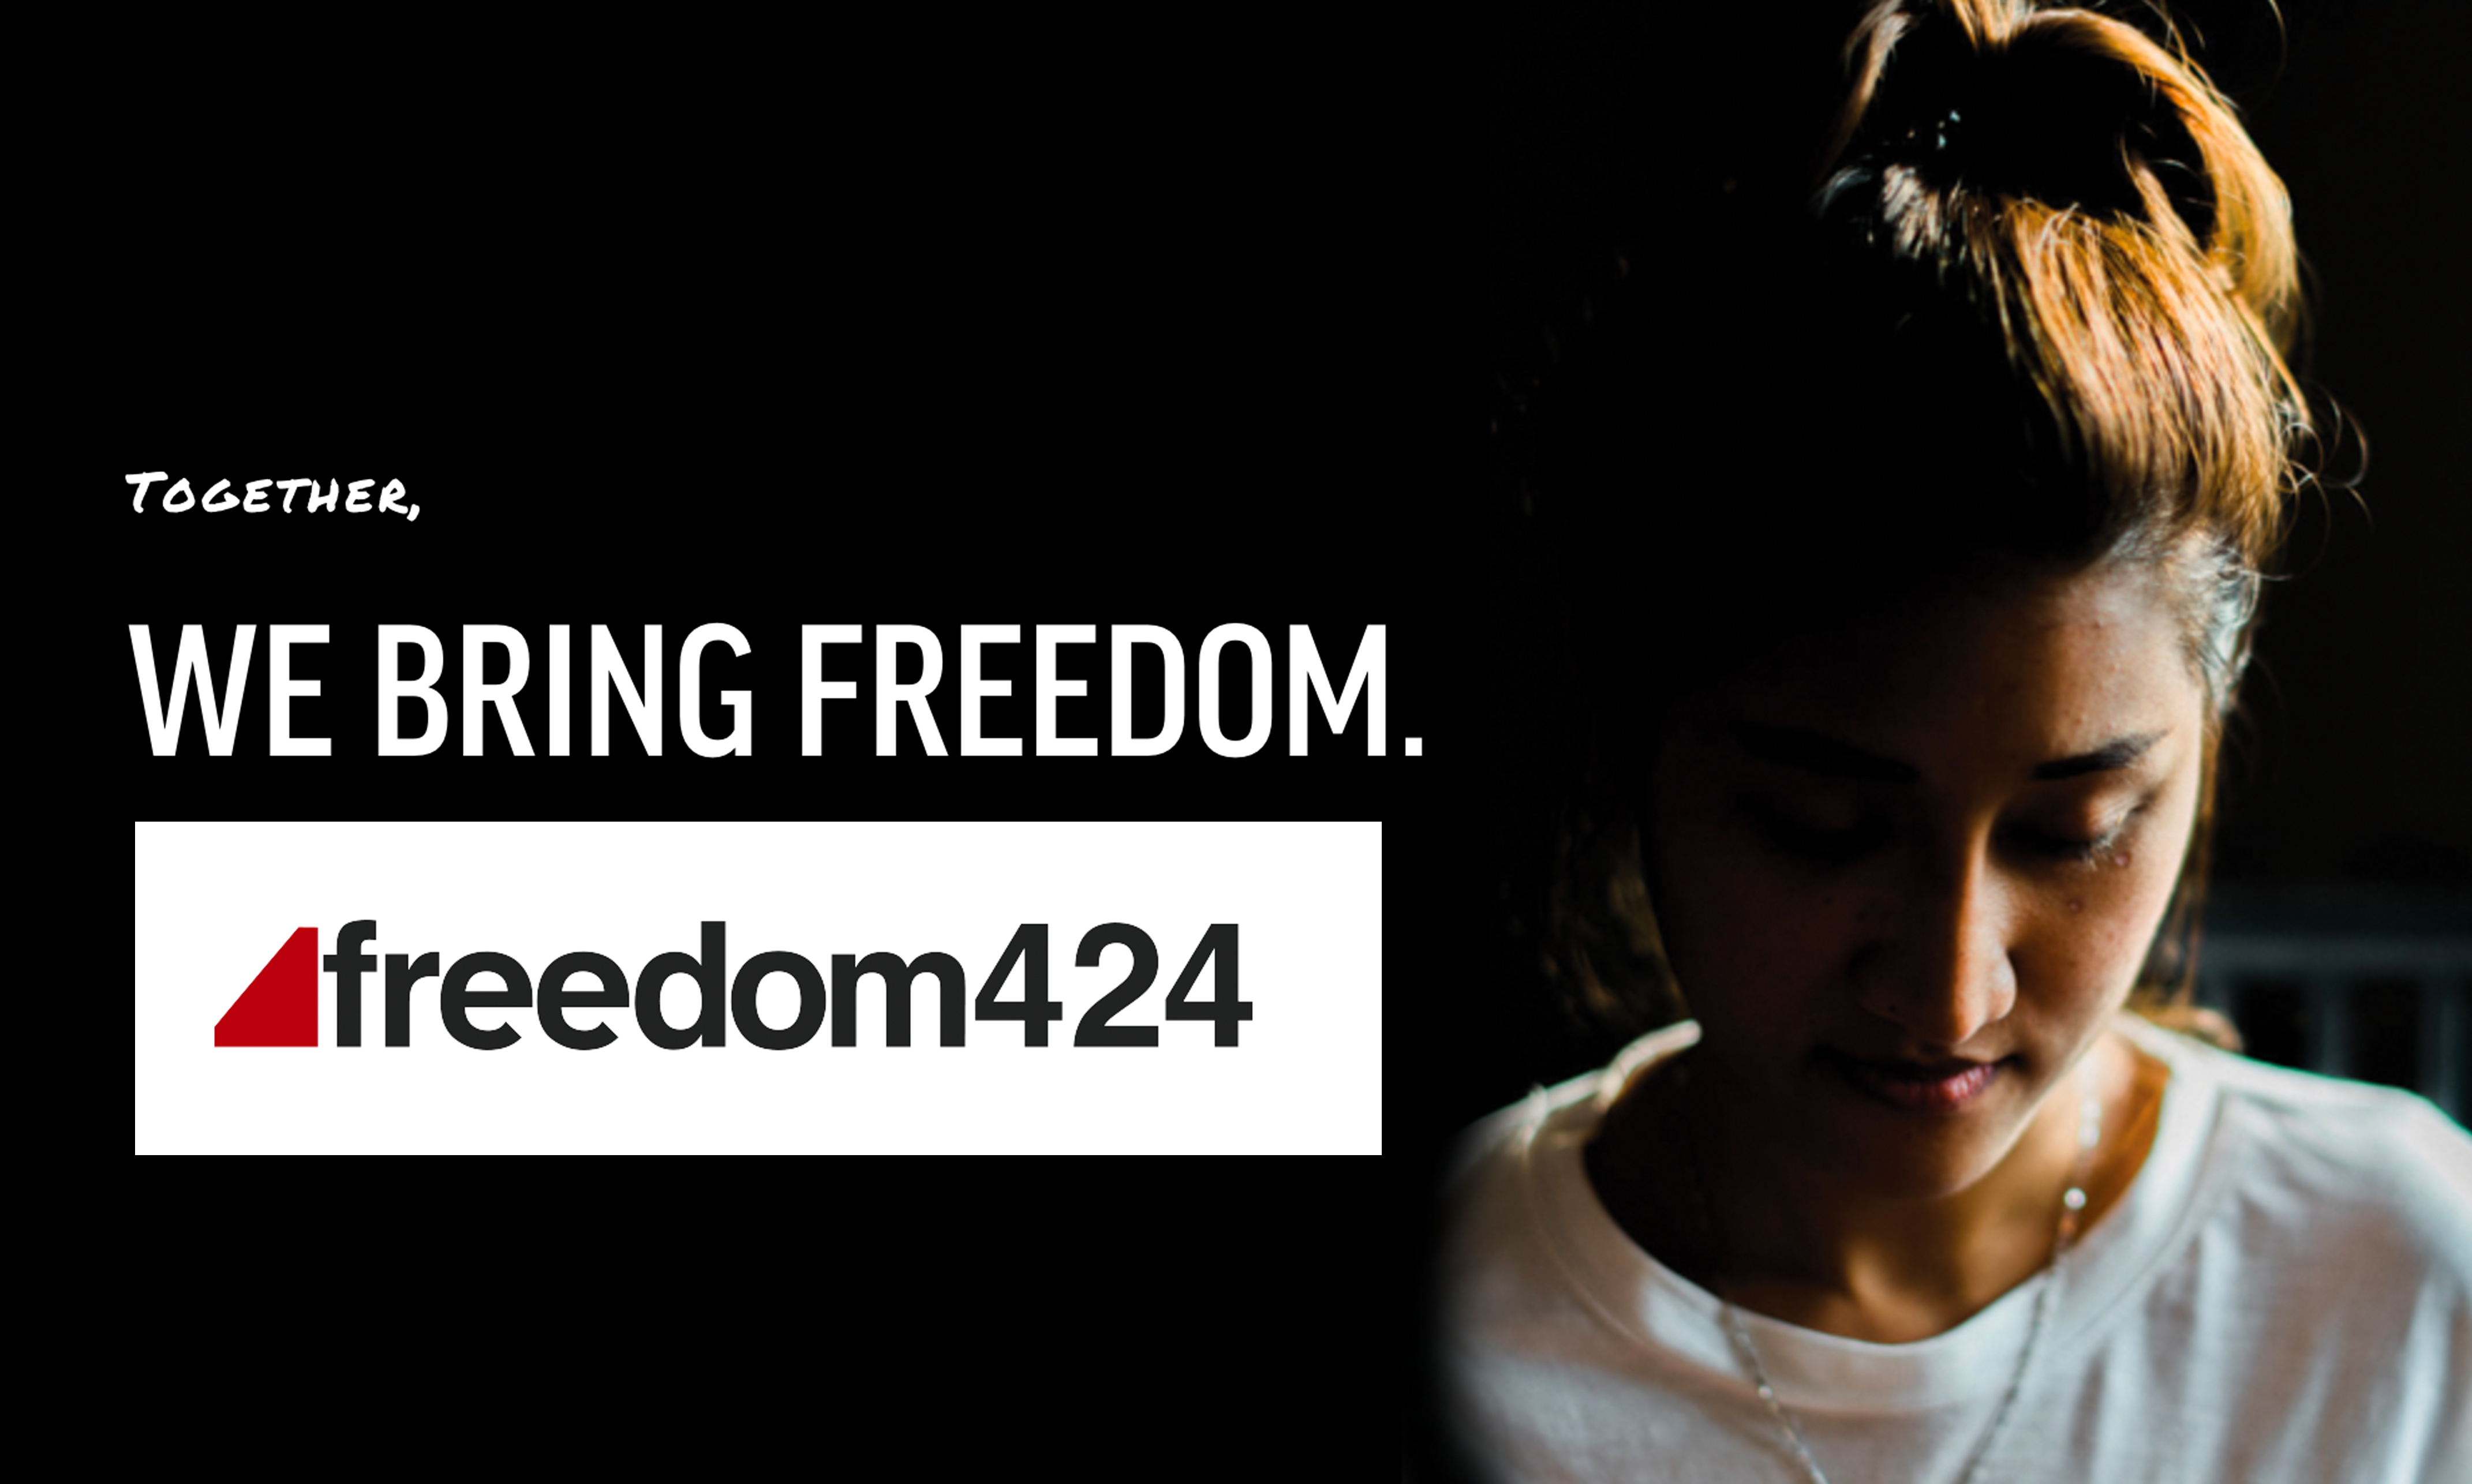 CWC 3.11.2021 - Freedom 424 Ending Human Trafficking at Home and Abroad